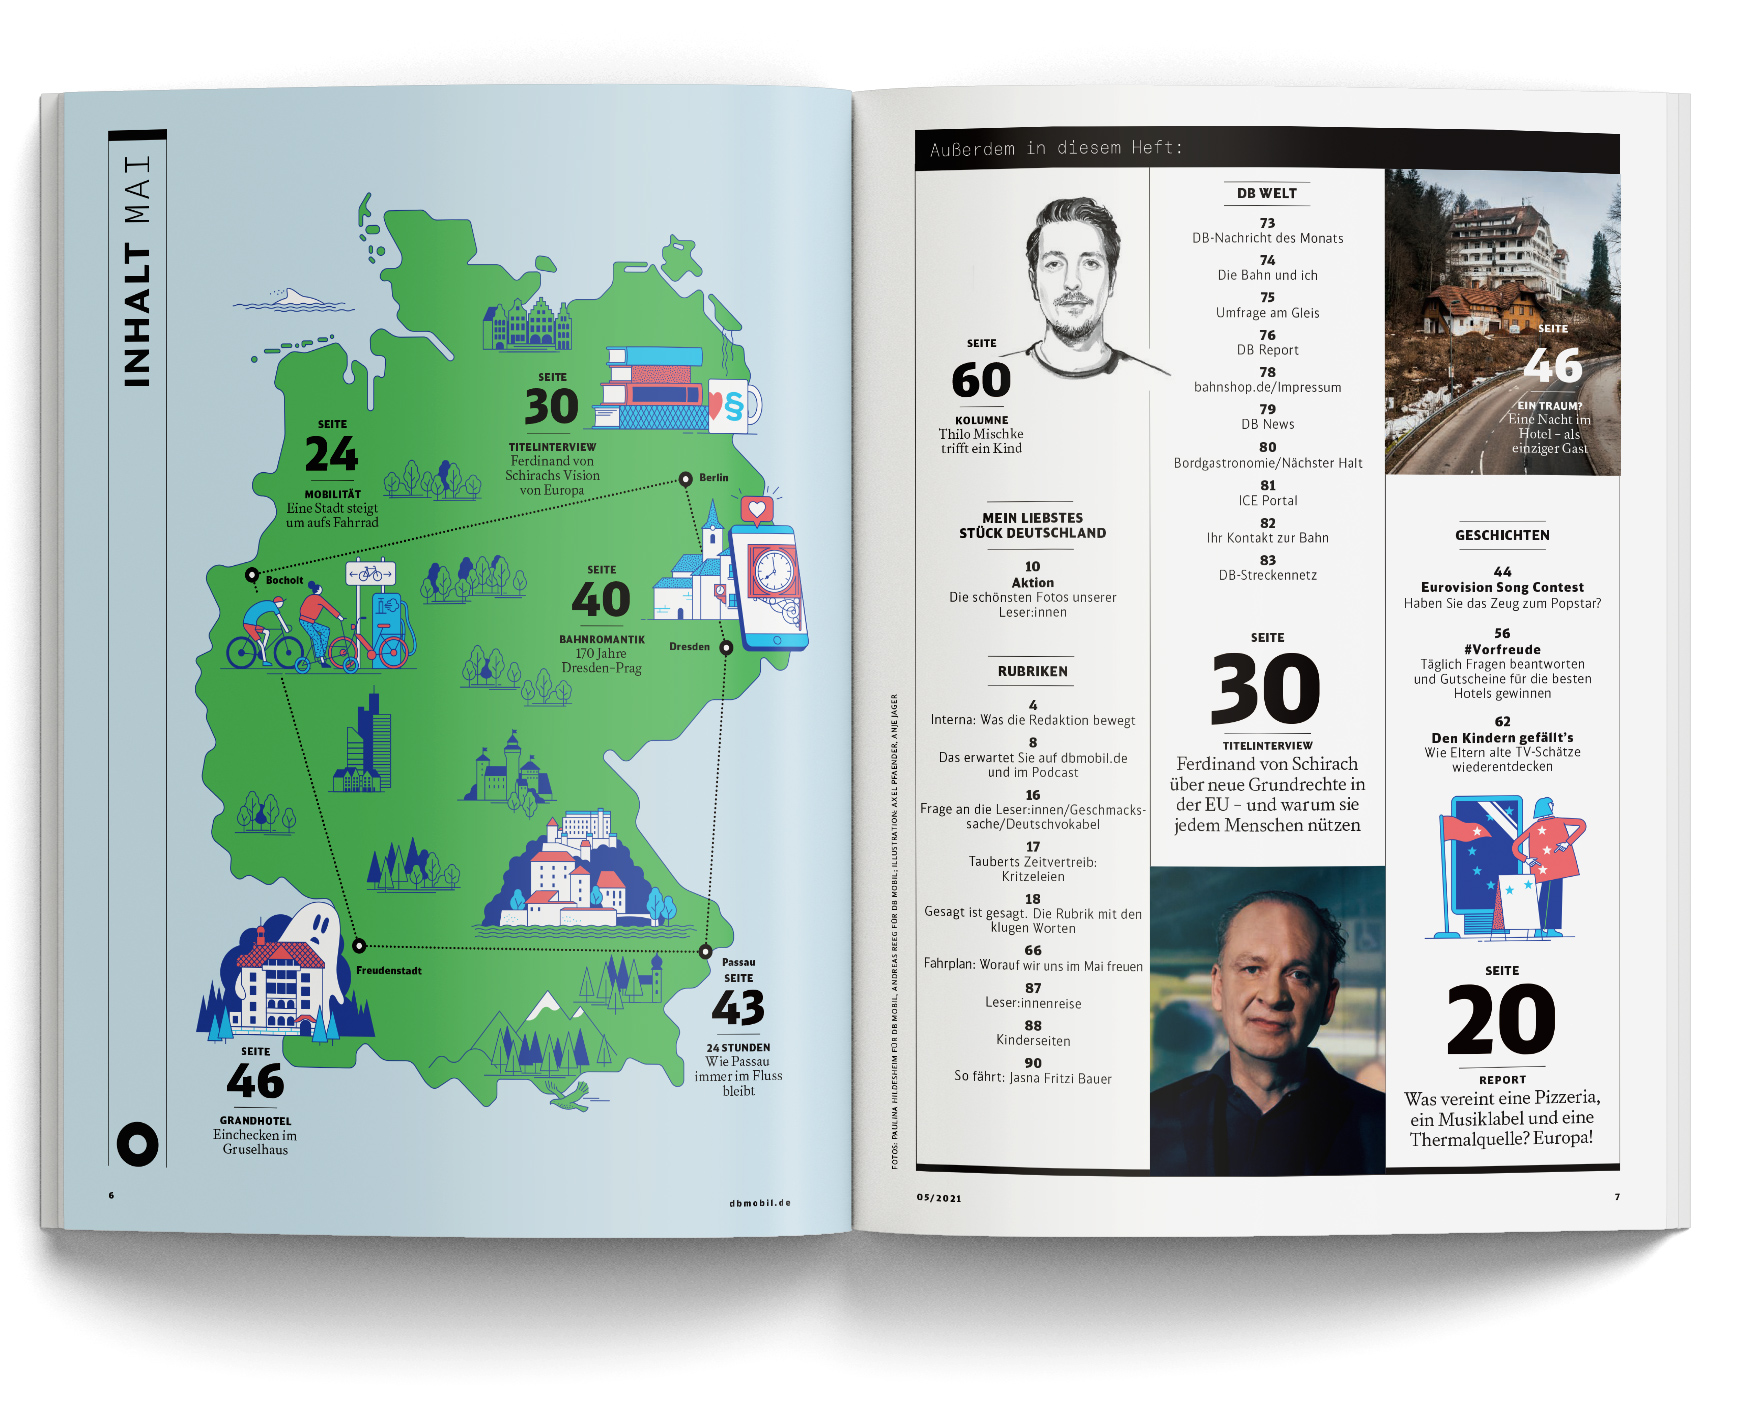 Magazine spread of DB mobil issue May 2021 with illustrated map of Germany. Illustrations by Axel Pfaender for Deutsche Bahn.